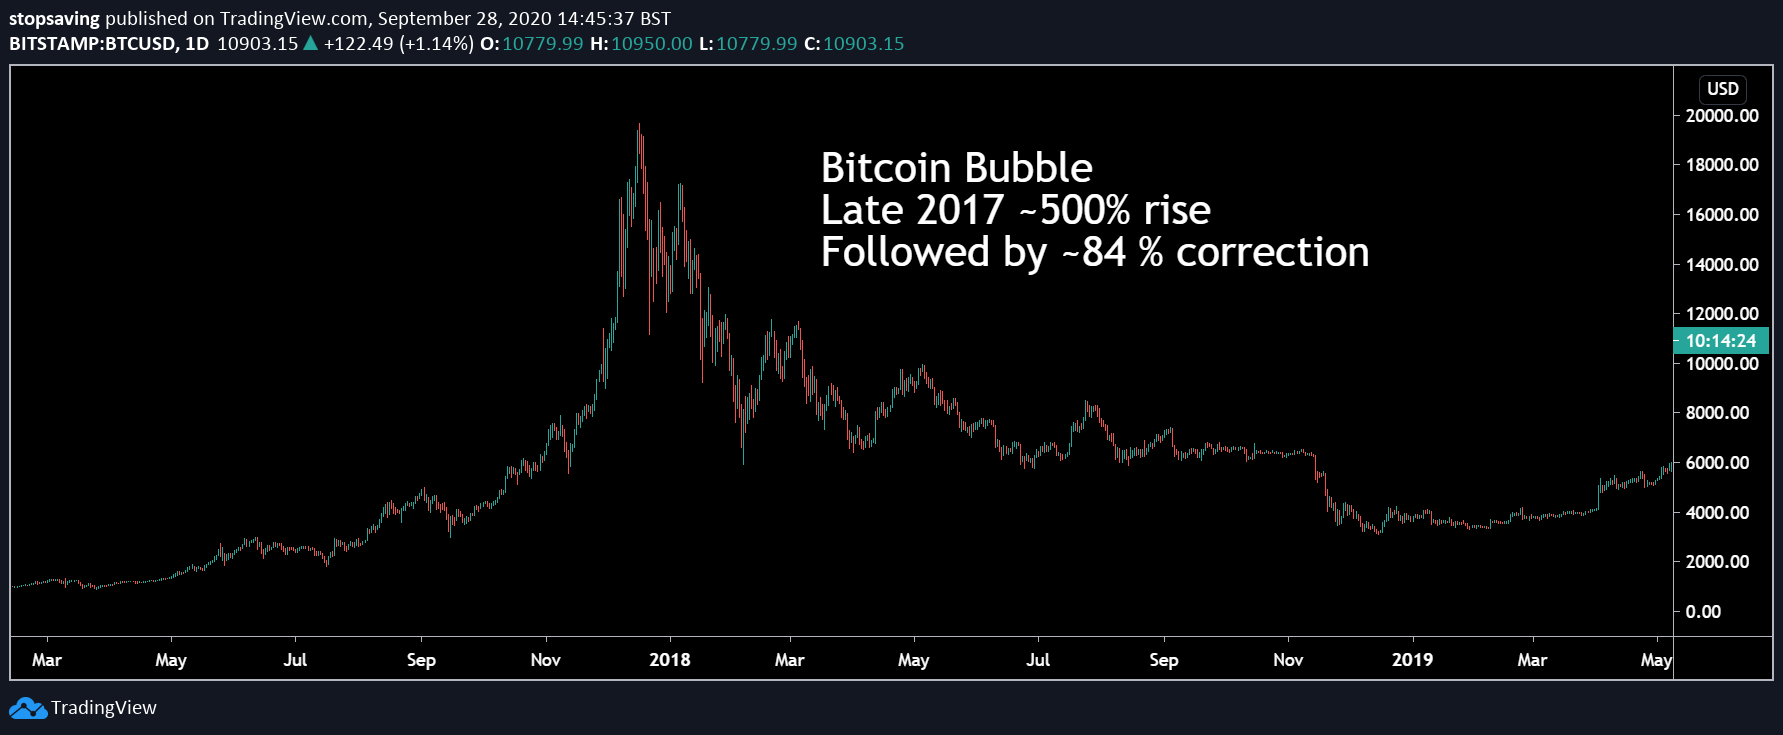 chart showing bitcoin bubble of 2017